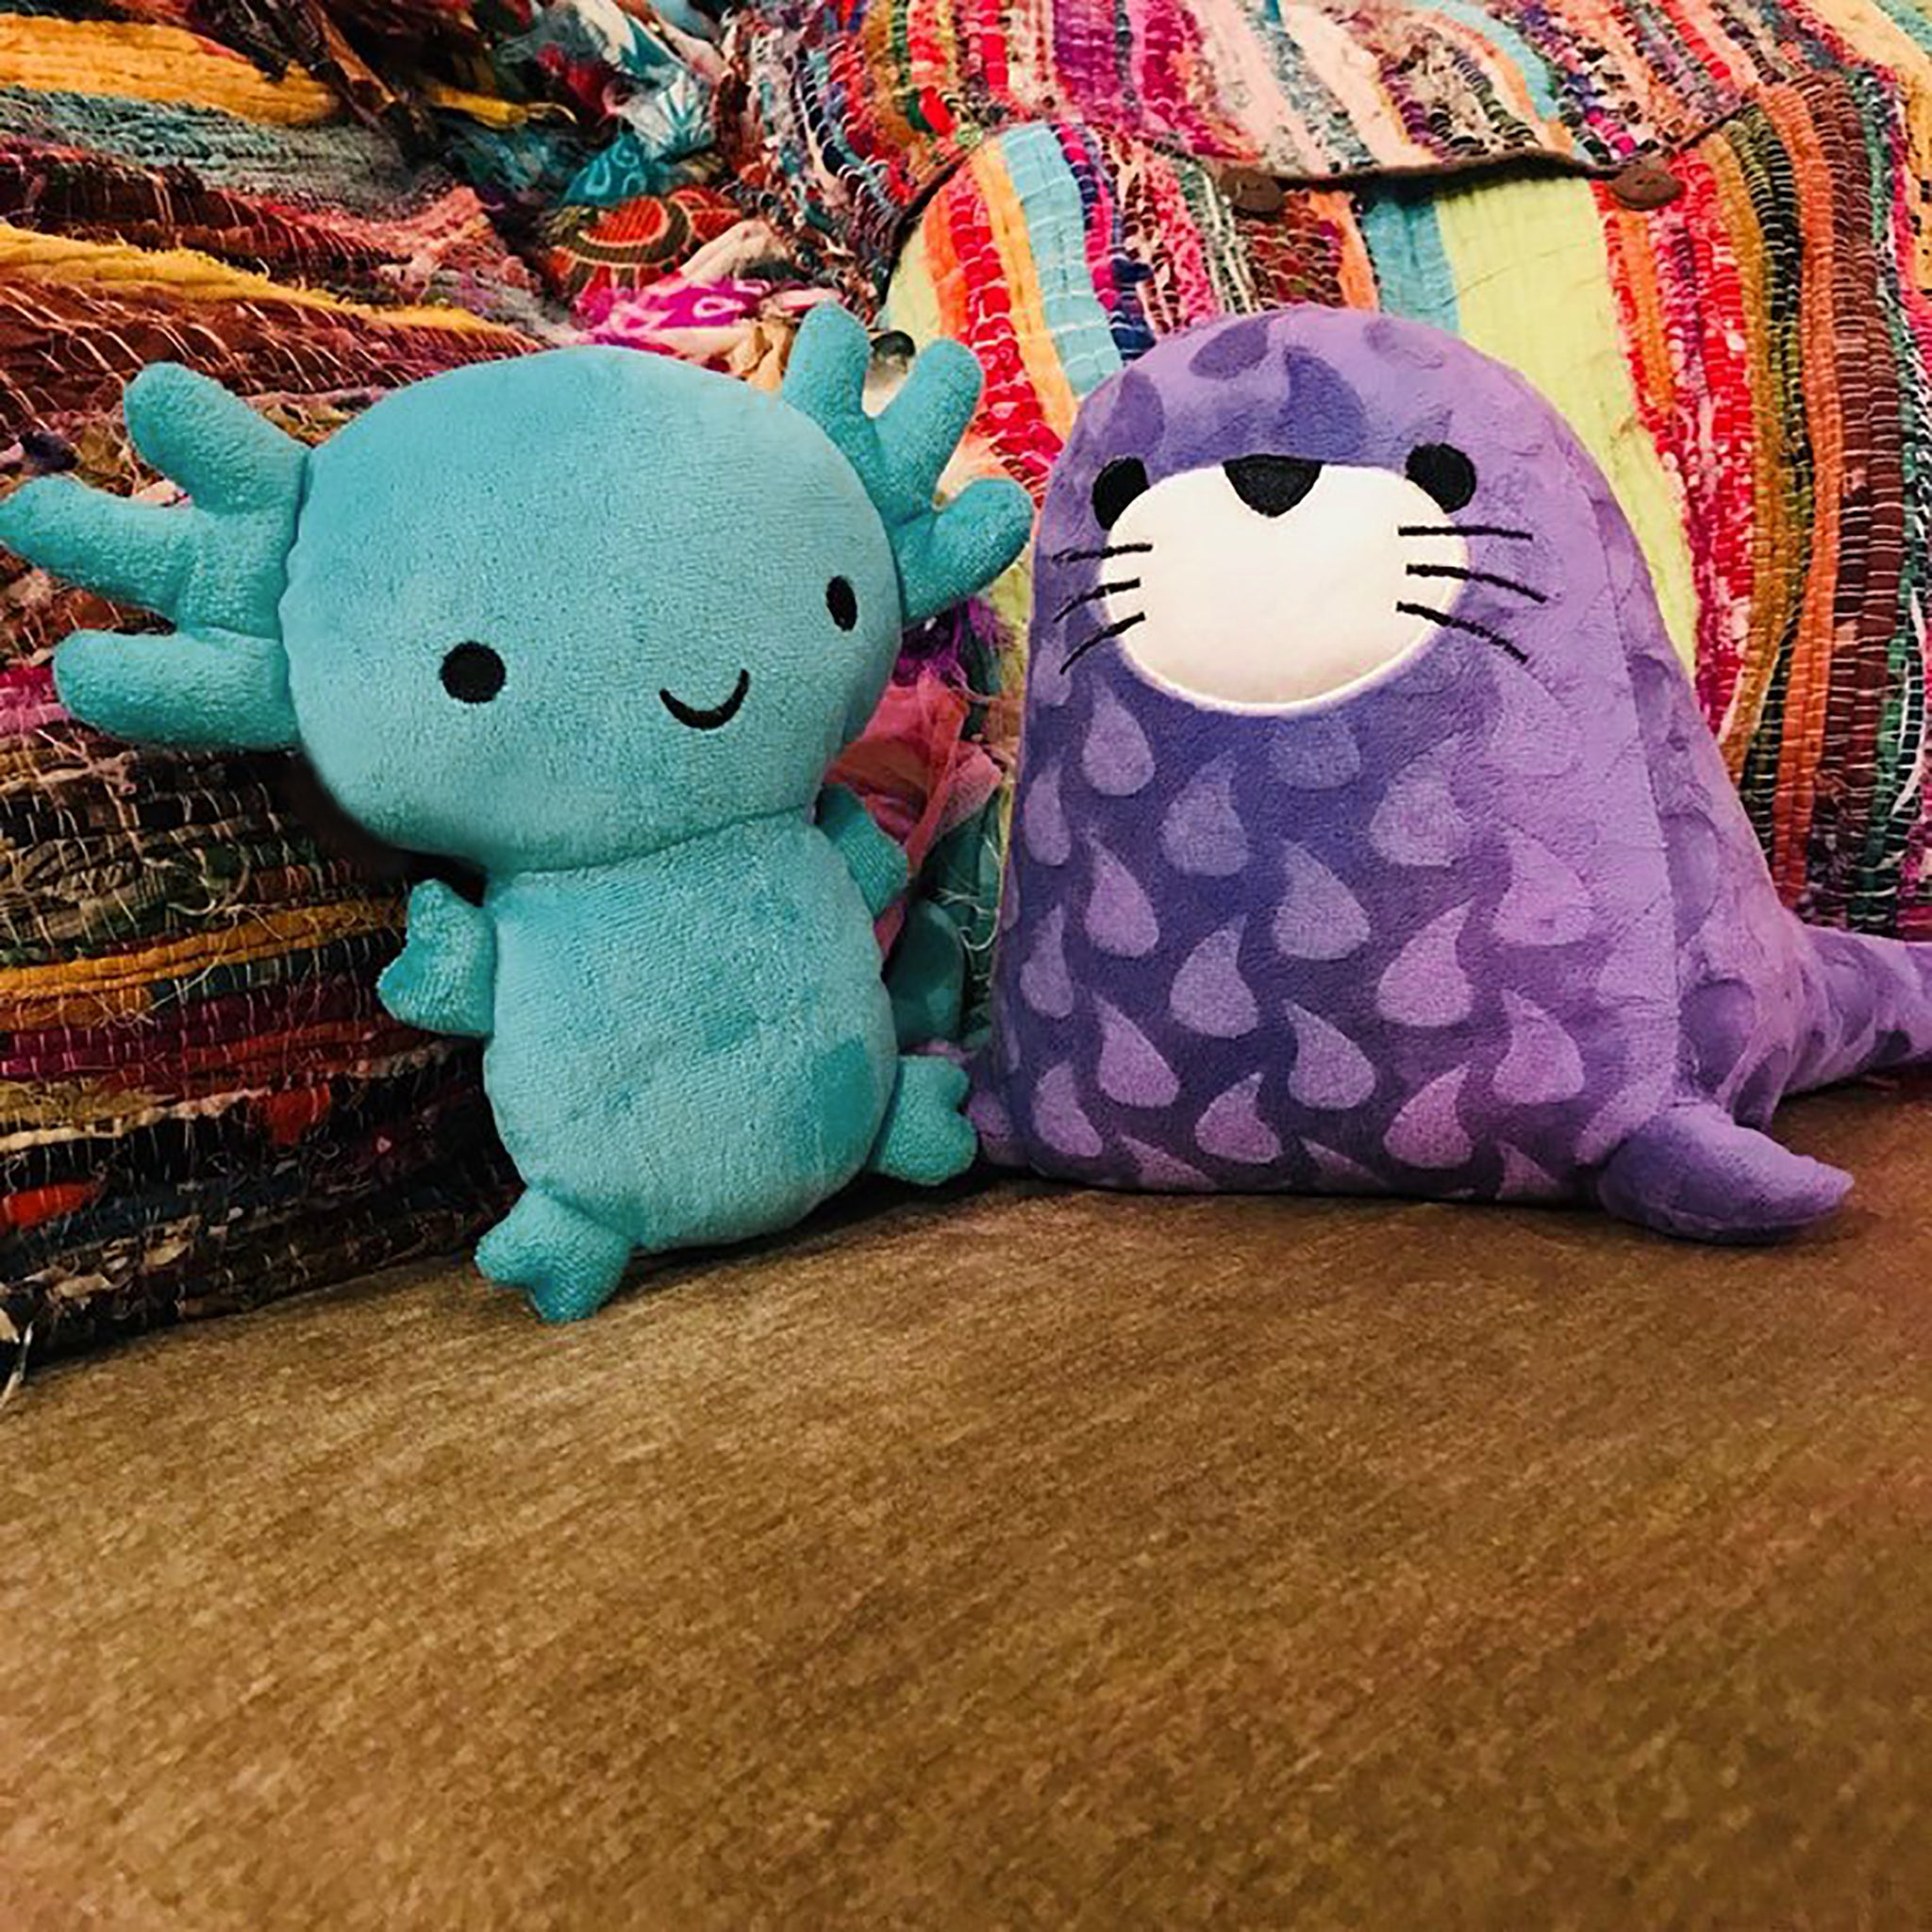 Axolotl and Spotted Seal Plush Toys